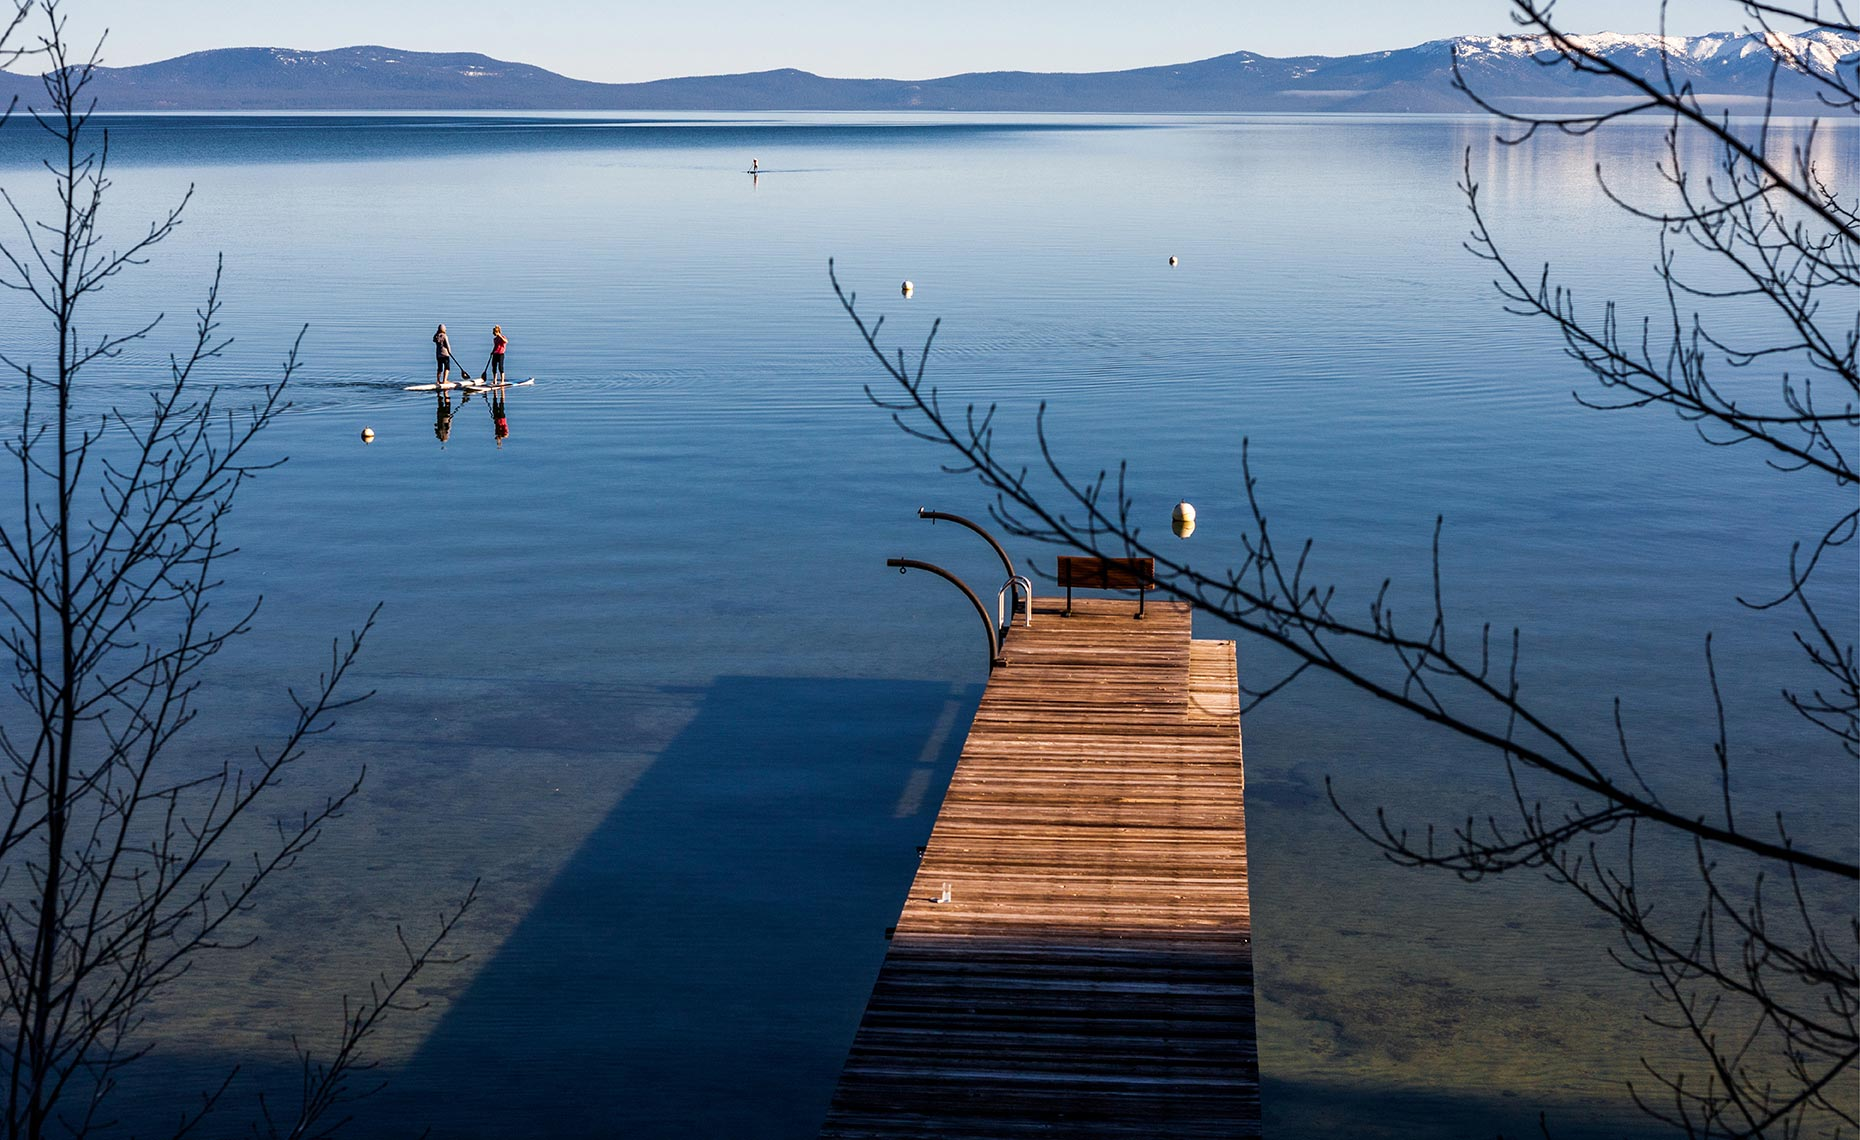 06_SUP_Stand_Up_Paddle_South_Lake_Tahoe_California_Environment_Landscape_Chris_Wellhausen_Photography.JPG